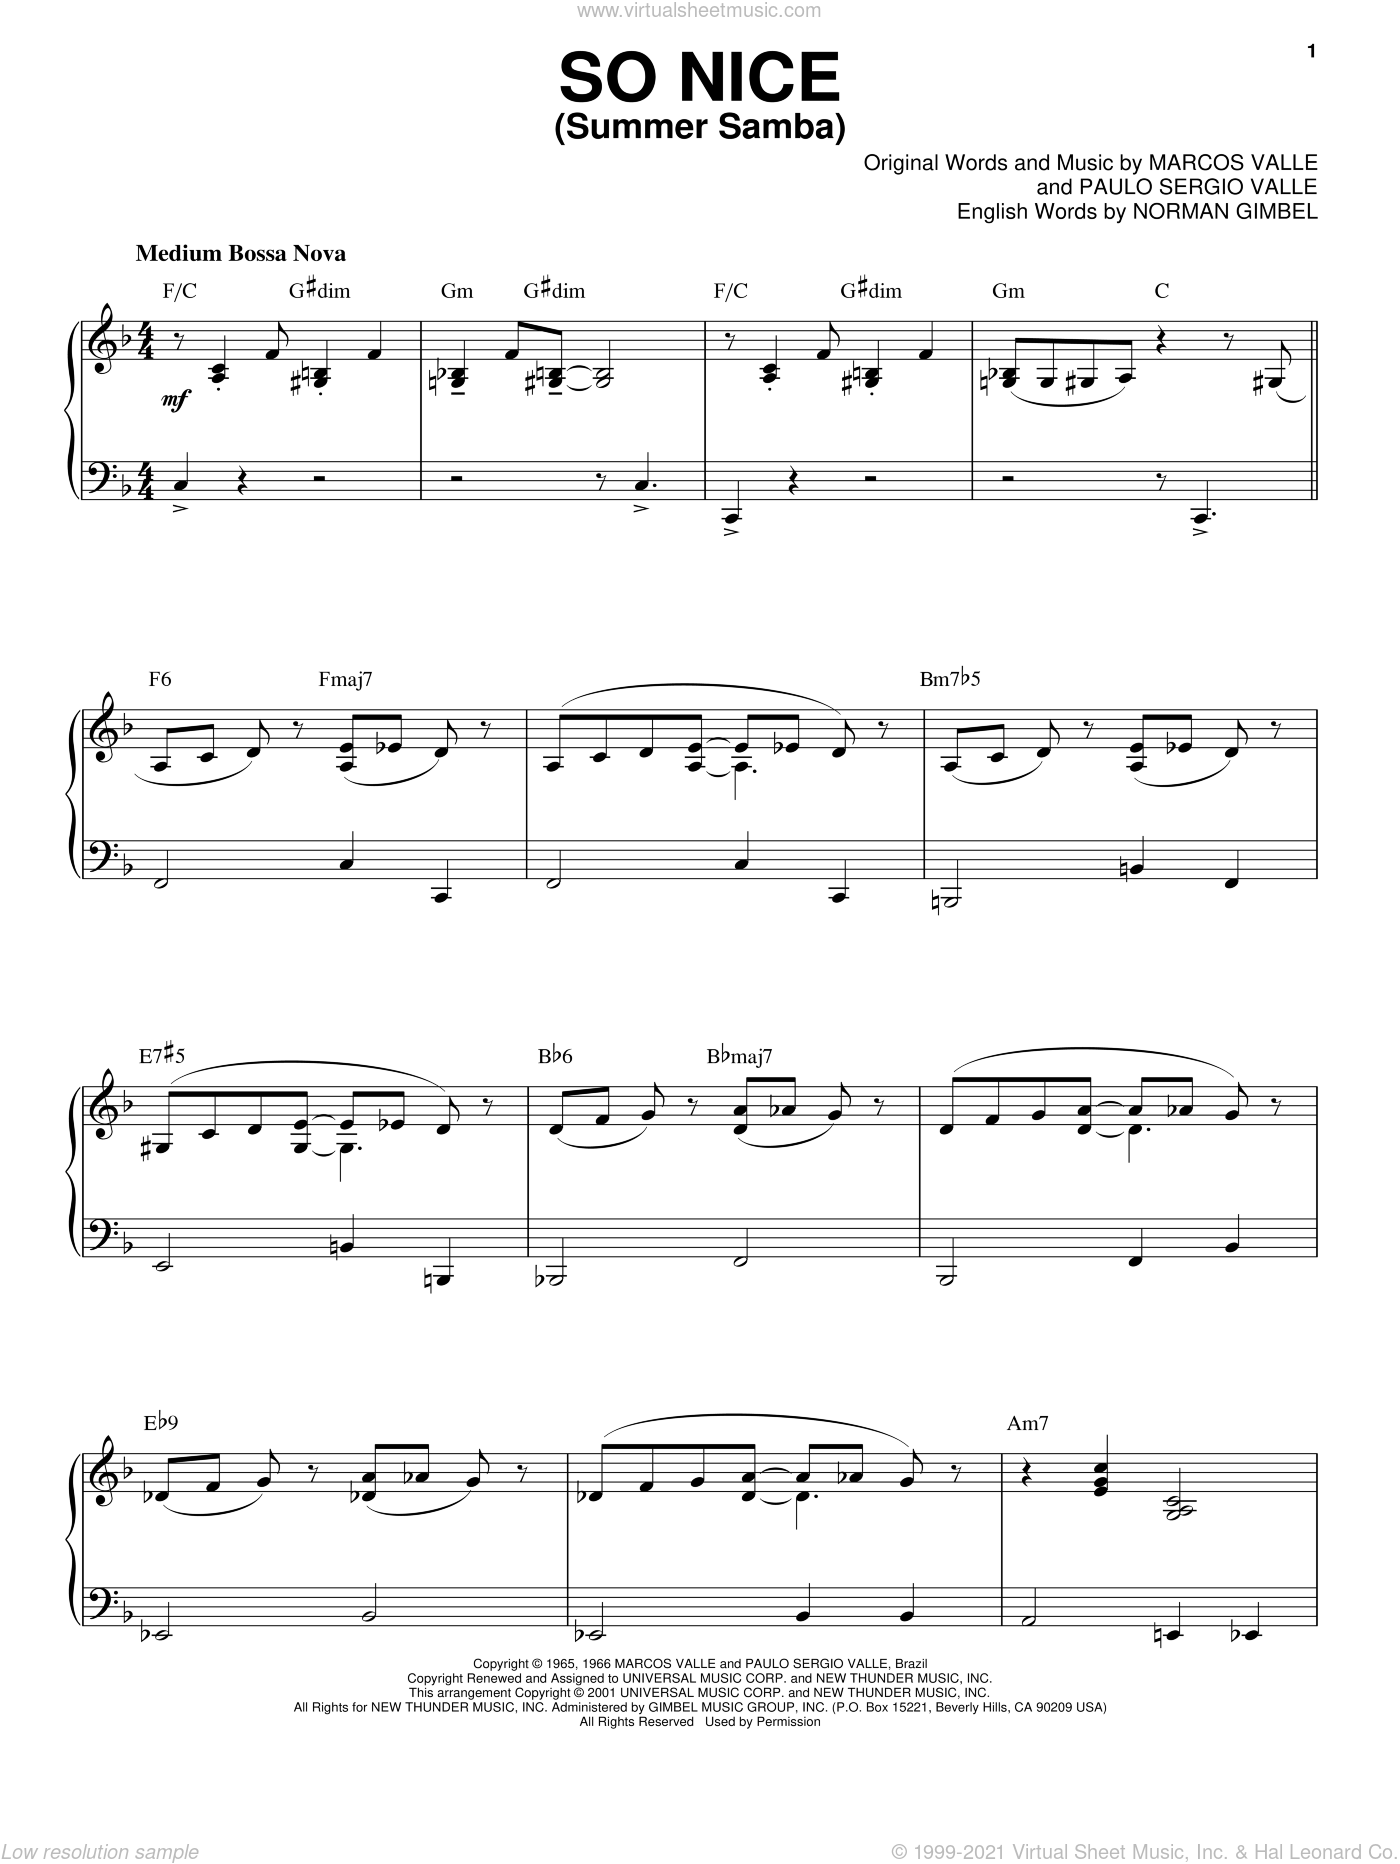 So Nice (Summer Samba), (intermediate) sheet music for piano solo by Marcos Valle, Norman Gimbel and Paulo Sergio Valle, intermediate skill level